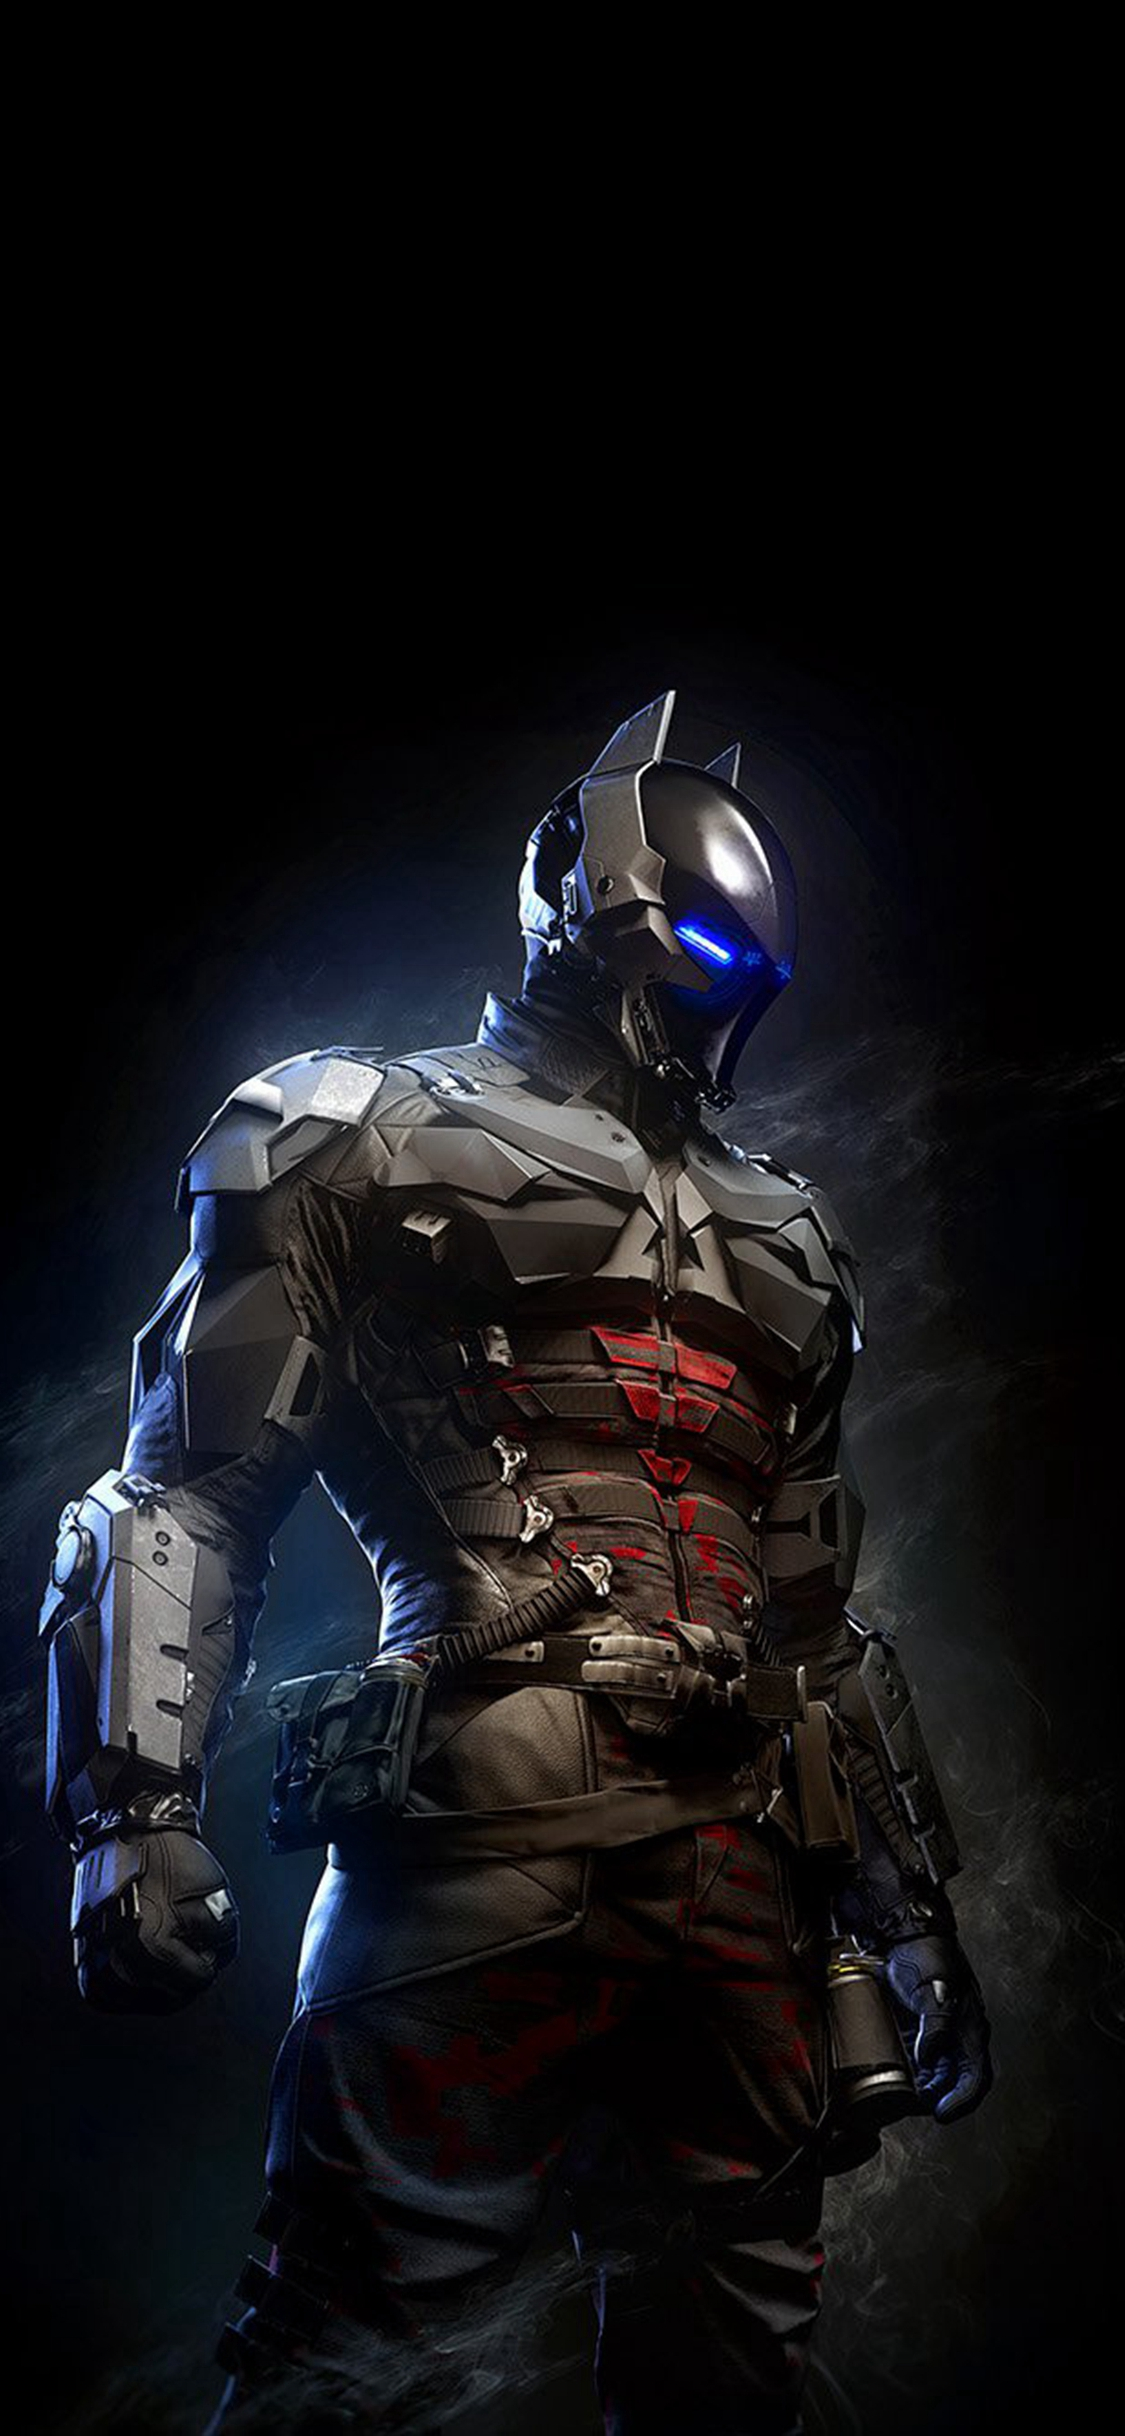 Batman Arkham Knight Body Armour Iphone X Wallpapers Free Download